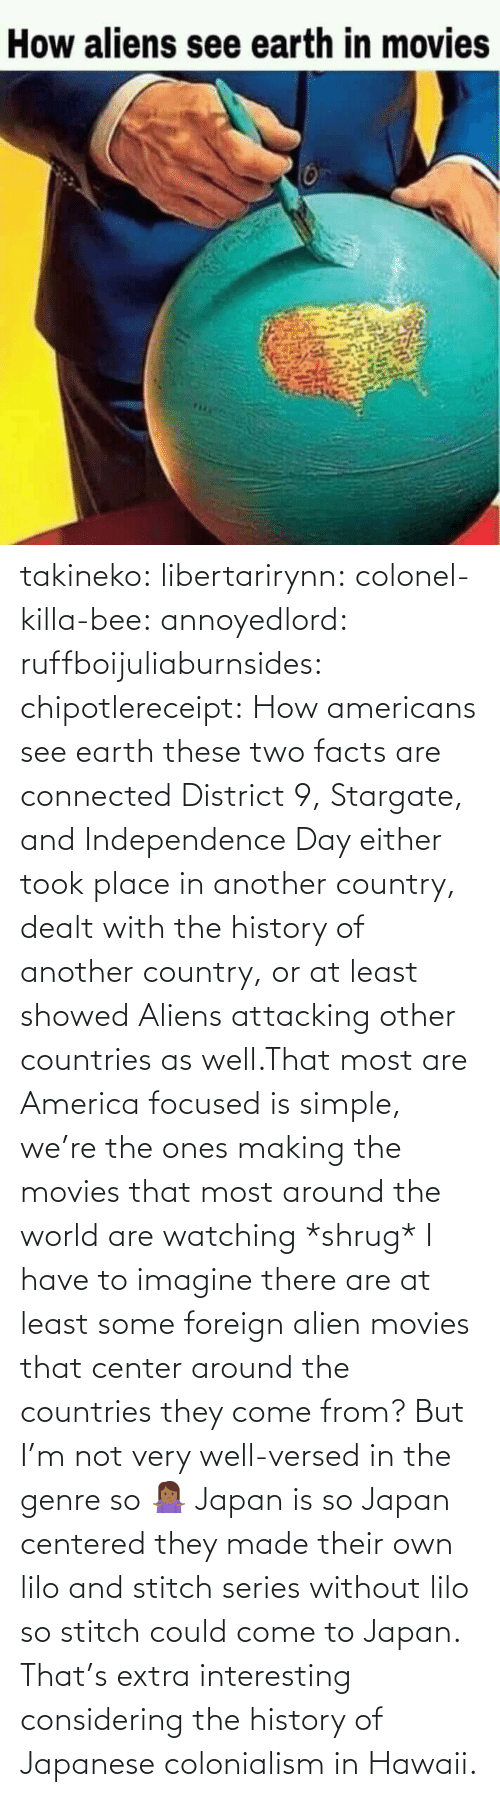 focused: takineko:  libertarirynn:  colonel-killa-bee:  annoyedlord: ruffboijuliaburnsides:  chipotlereceipt: How americans see earth these two facts are connected     District 9, Stargate, and Independence Day either took place in another country, dealt with the history of another country, or at least showed Aliens attacking other countries as well.That most are America focused is simple, we're the ones making the movies that most around the world are watching *shrug*   I have to imagine there are at least some foreign alien movies that center around the countries they come from? But I'm not very well-versed in the genre so 🤷🏾‍♀️   Japan is so Japan centered they made their own lilo and stitch series without lilo so stitch could come to Japan.    That's extra interesting considering the history of Japanese colonialism in Hawaii.